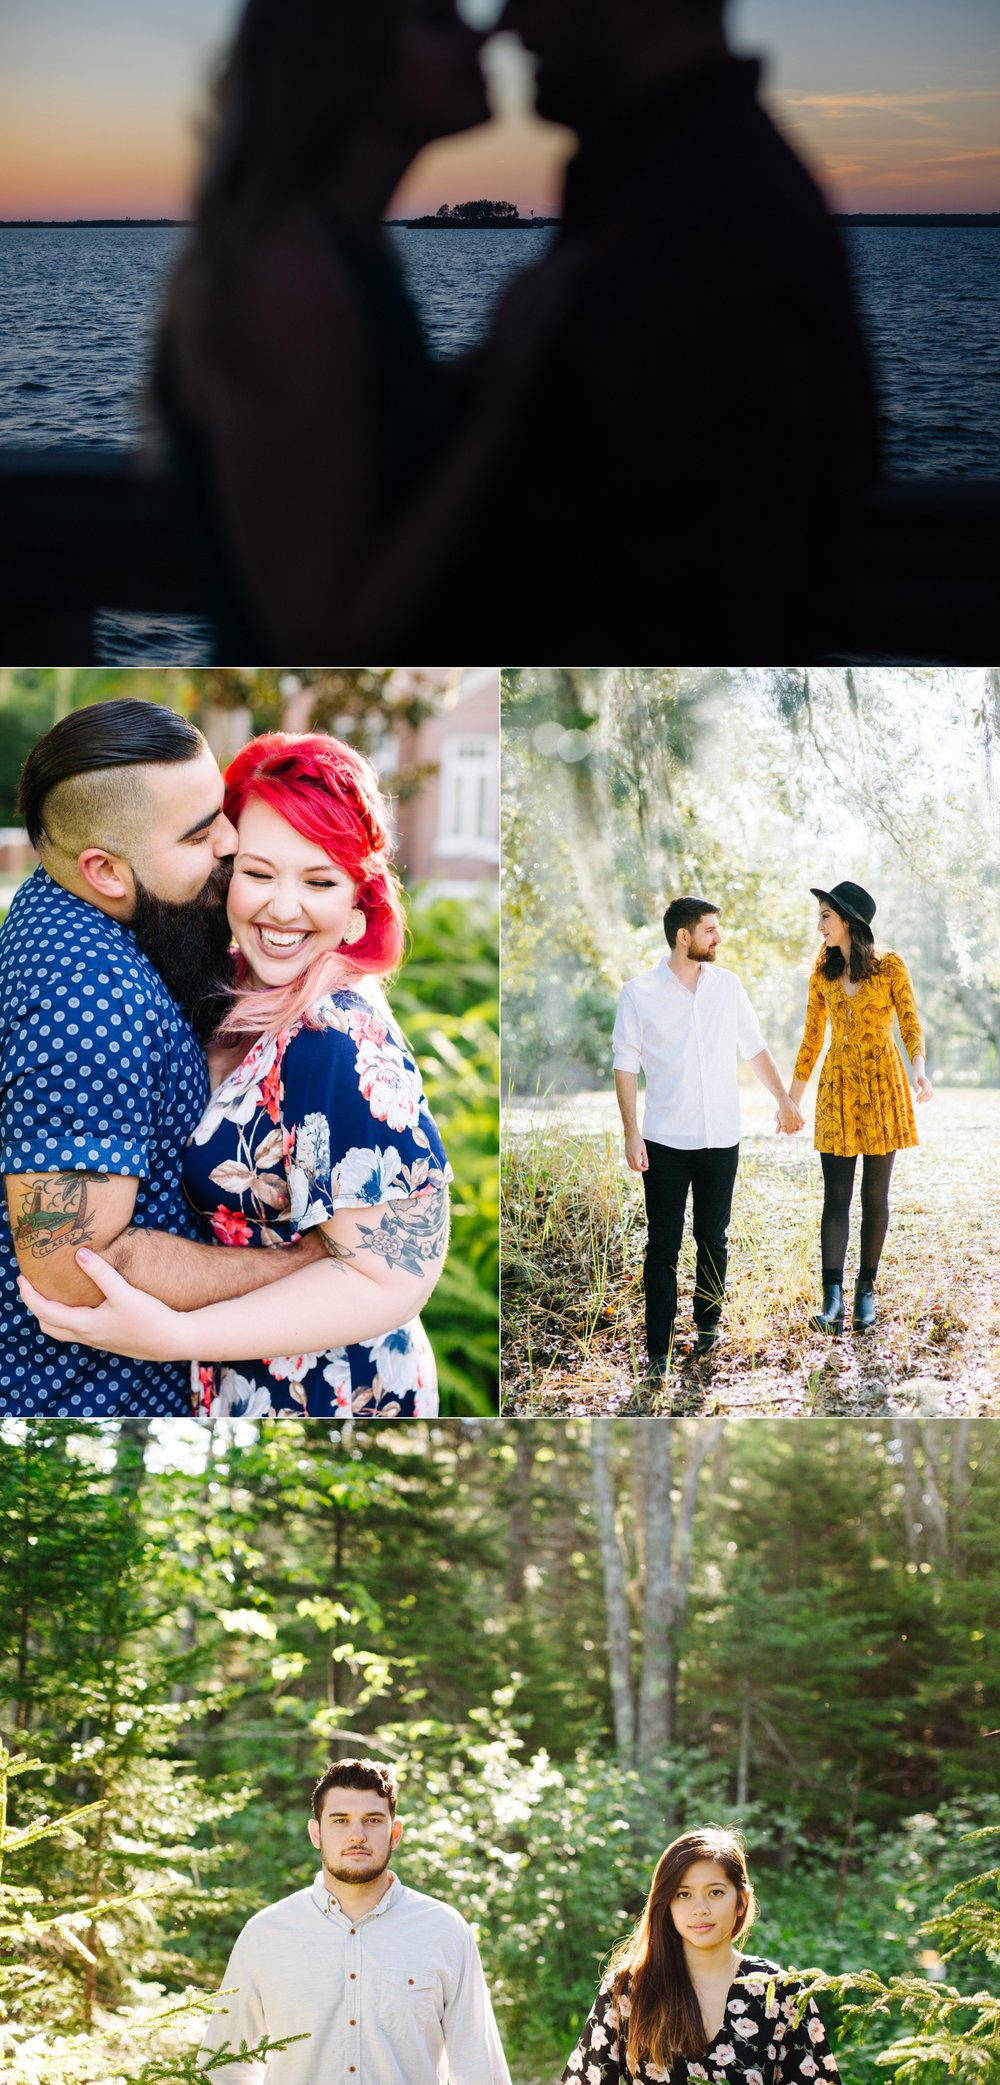 Jake & Katie Photography Best of Couples 2016-013.jpg